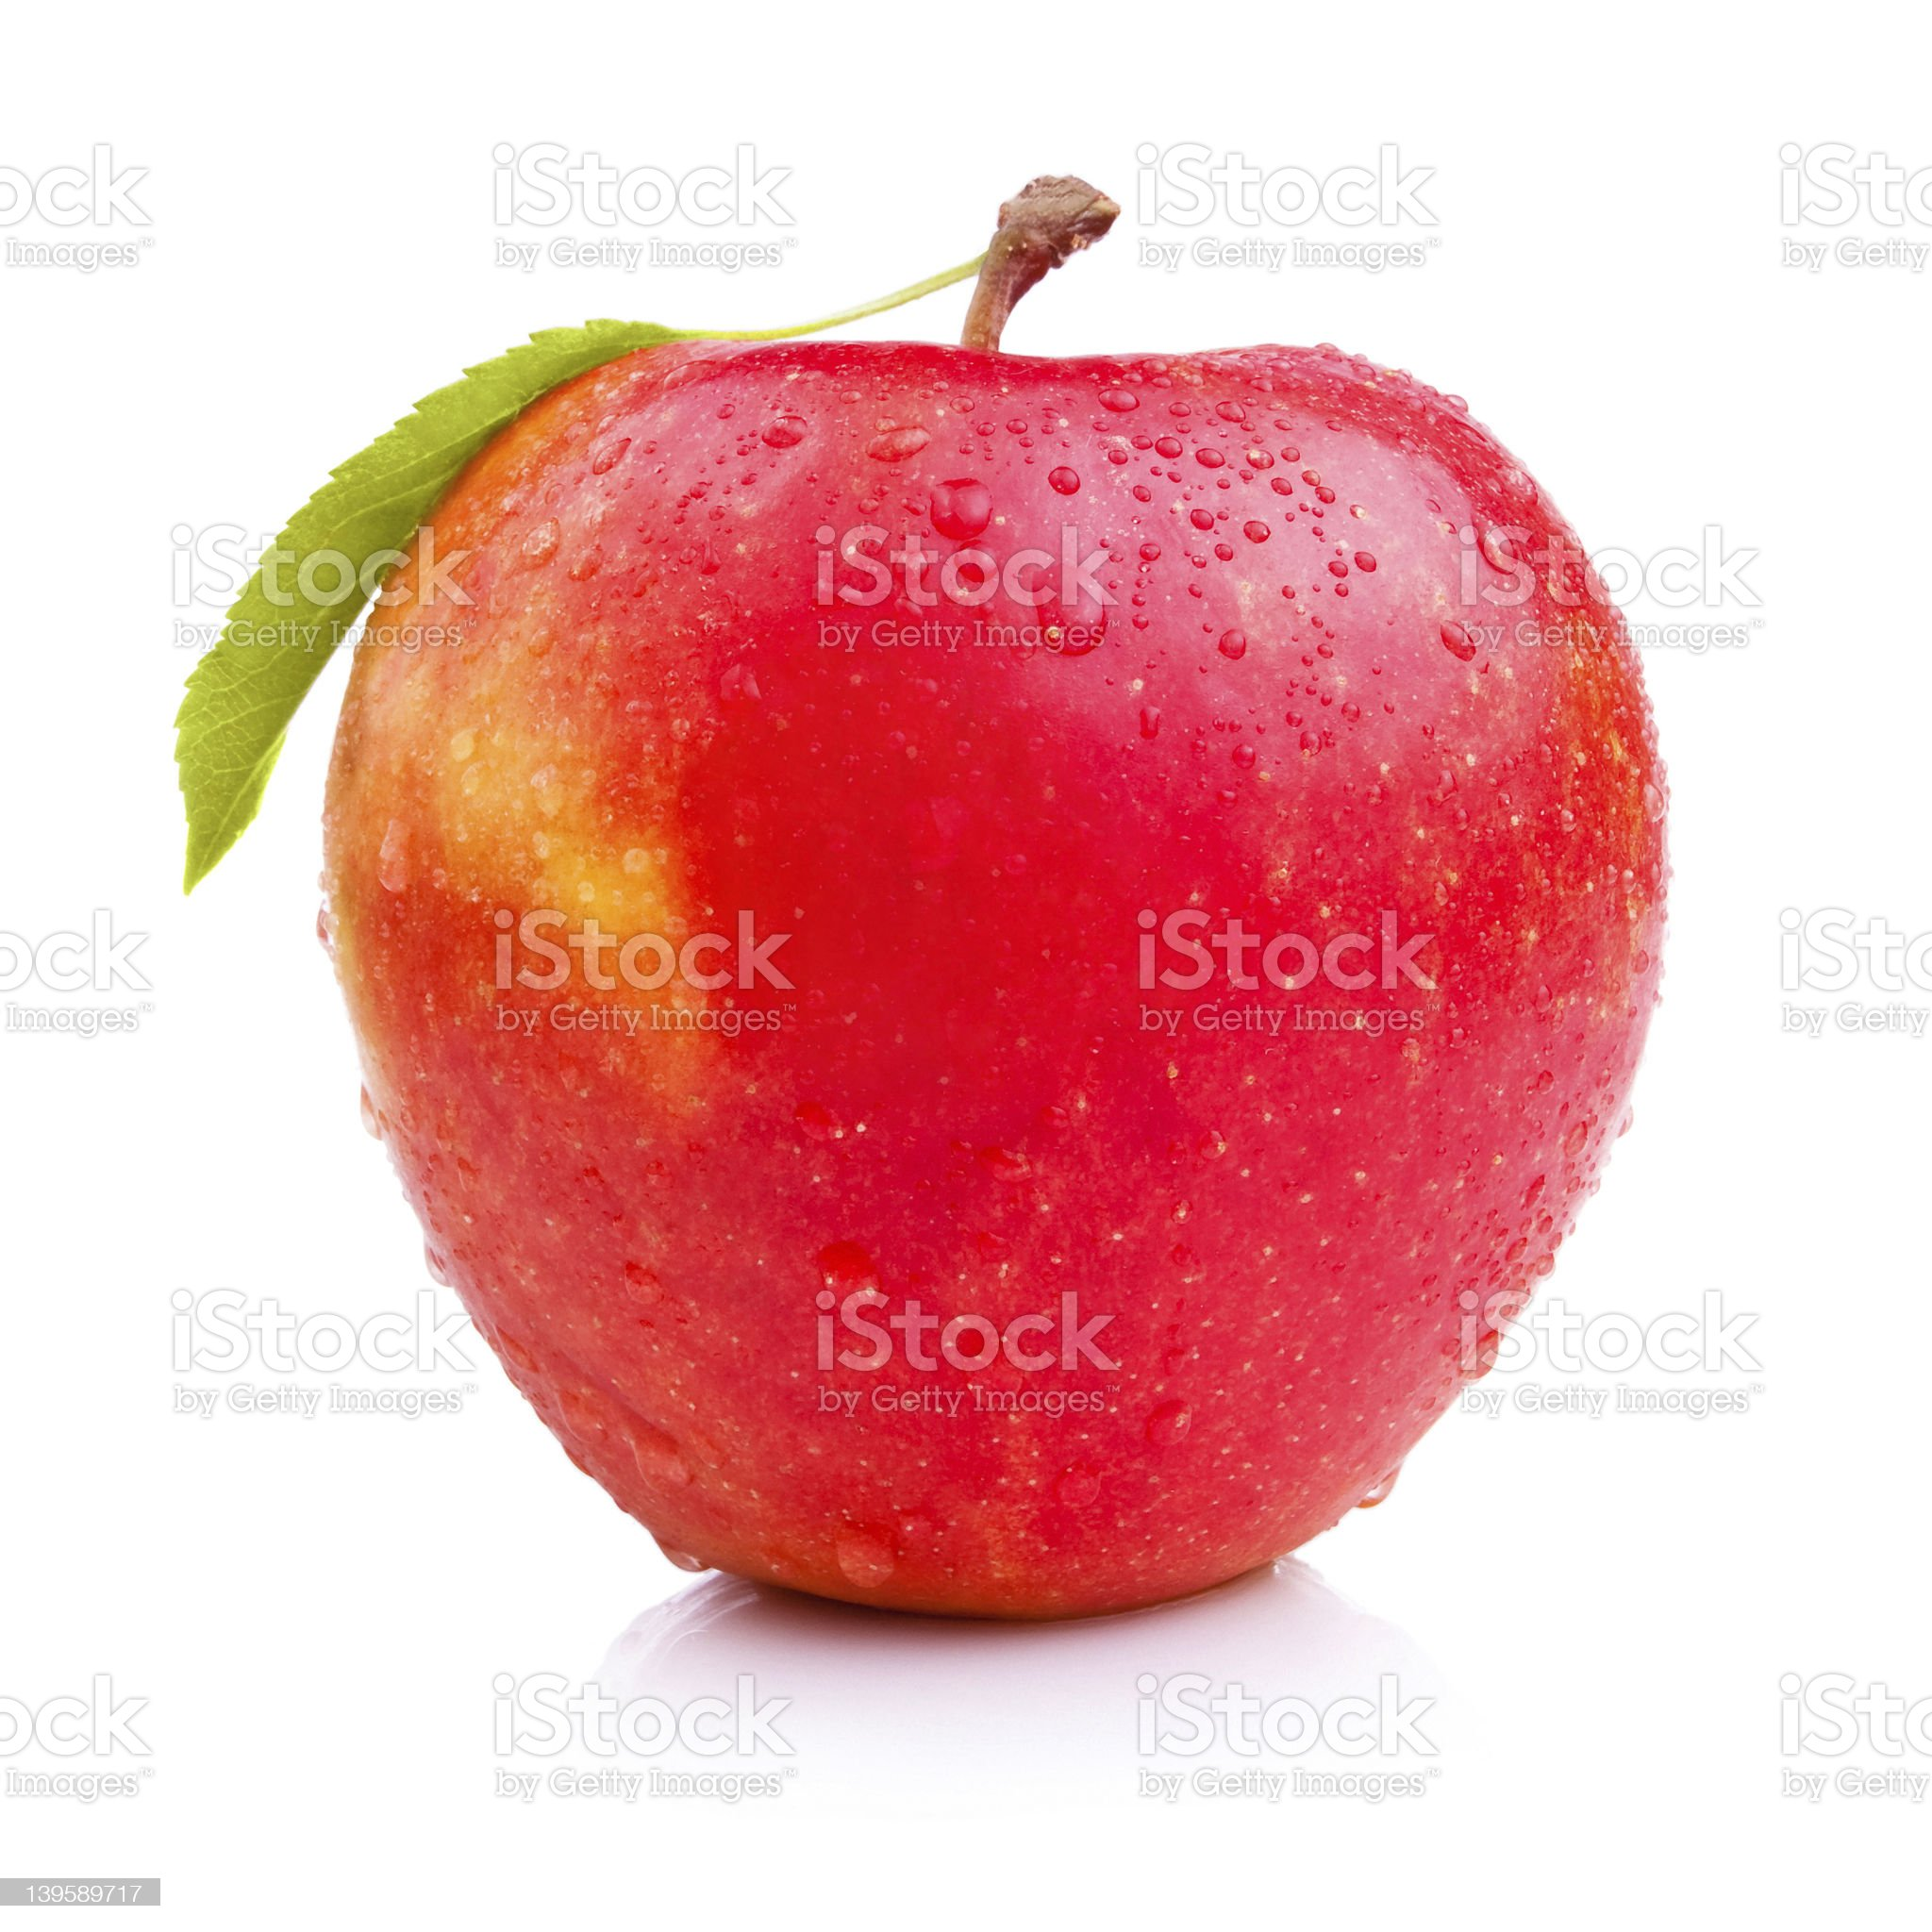 Wet fresh red apple with leaf isolated on white background royalty-free stock photo